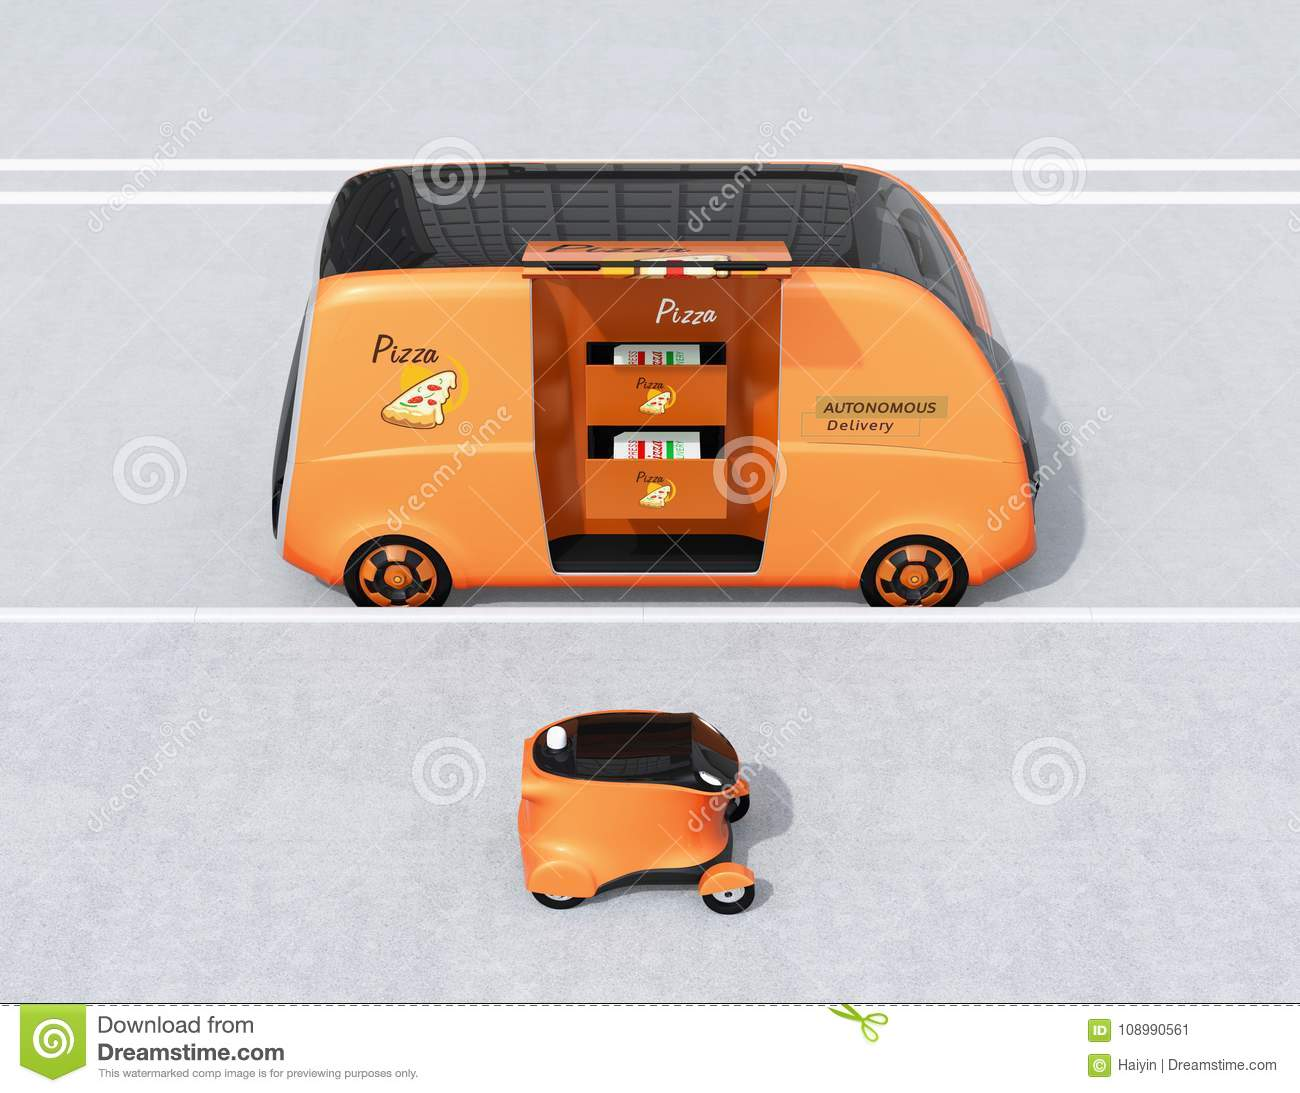 Side view of self-driving pizza delivery van and drone in the street